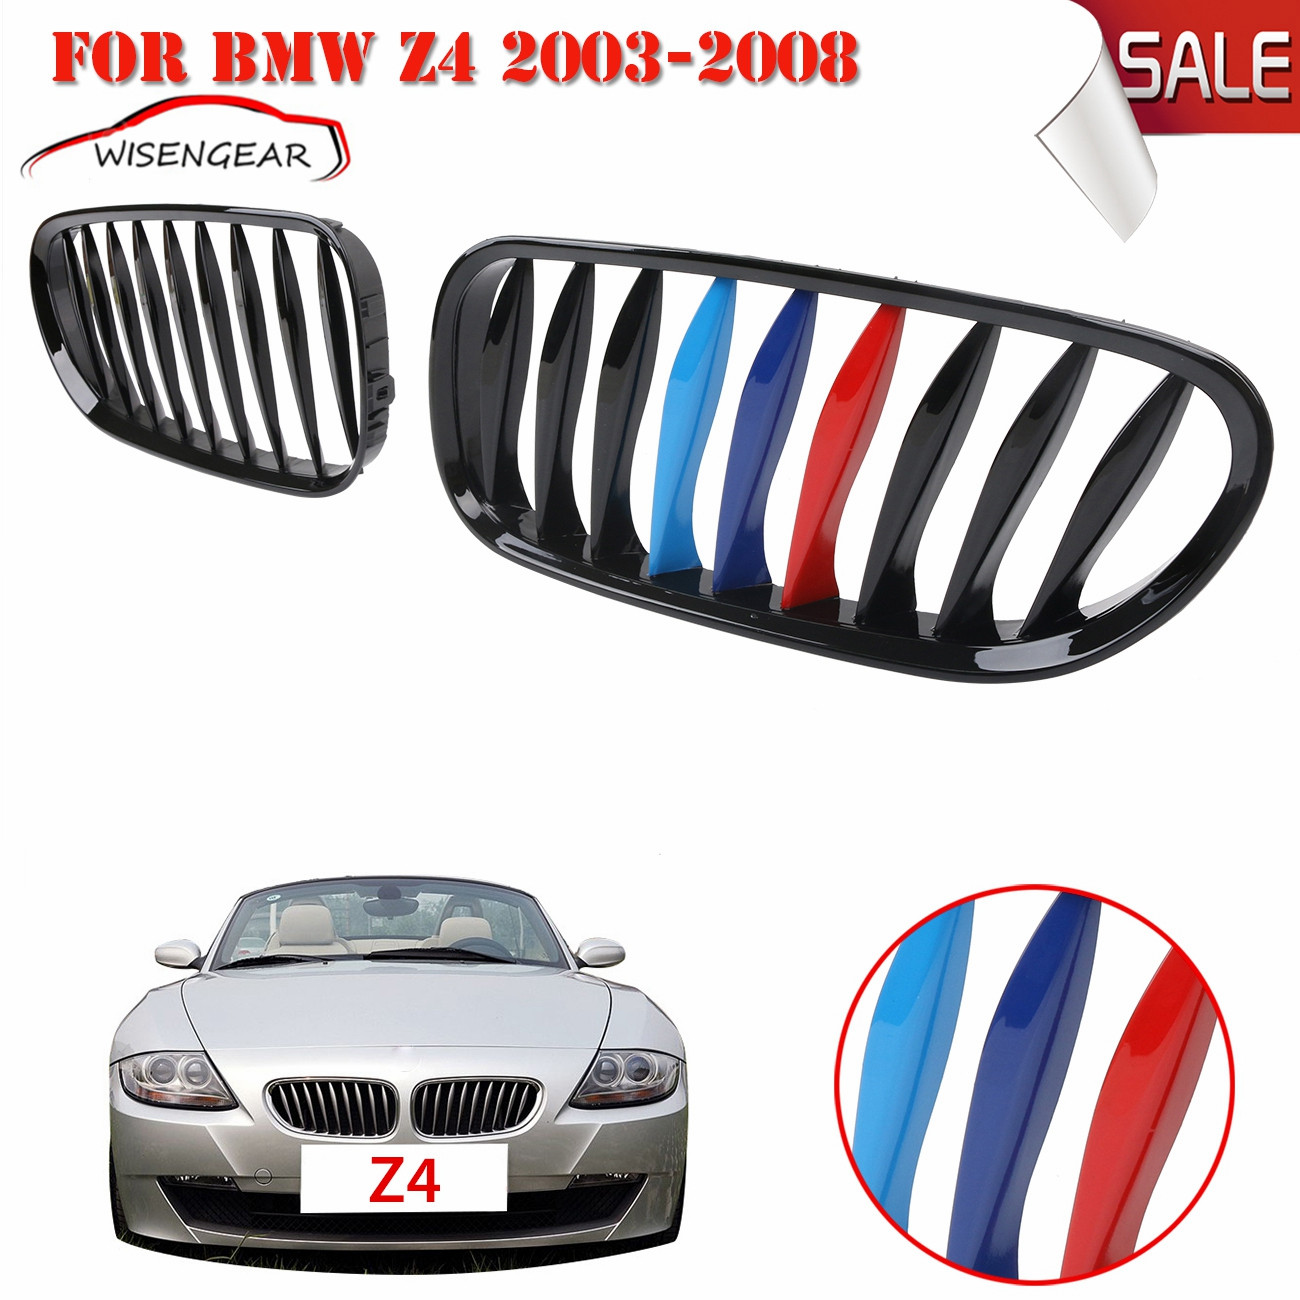 Gloss Black + M color Front Kidney Grille Grill For BMW E85/E86 Z4 2003 2004 2005 2006 2007 2008 Convertible/Coupe C/5 2016 new a pair front grilles left and right double line grille gloss black front grills for bmw 3 series e46 2002 2004 4 door